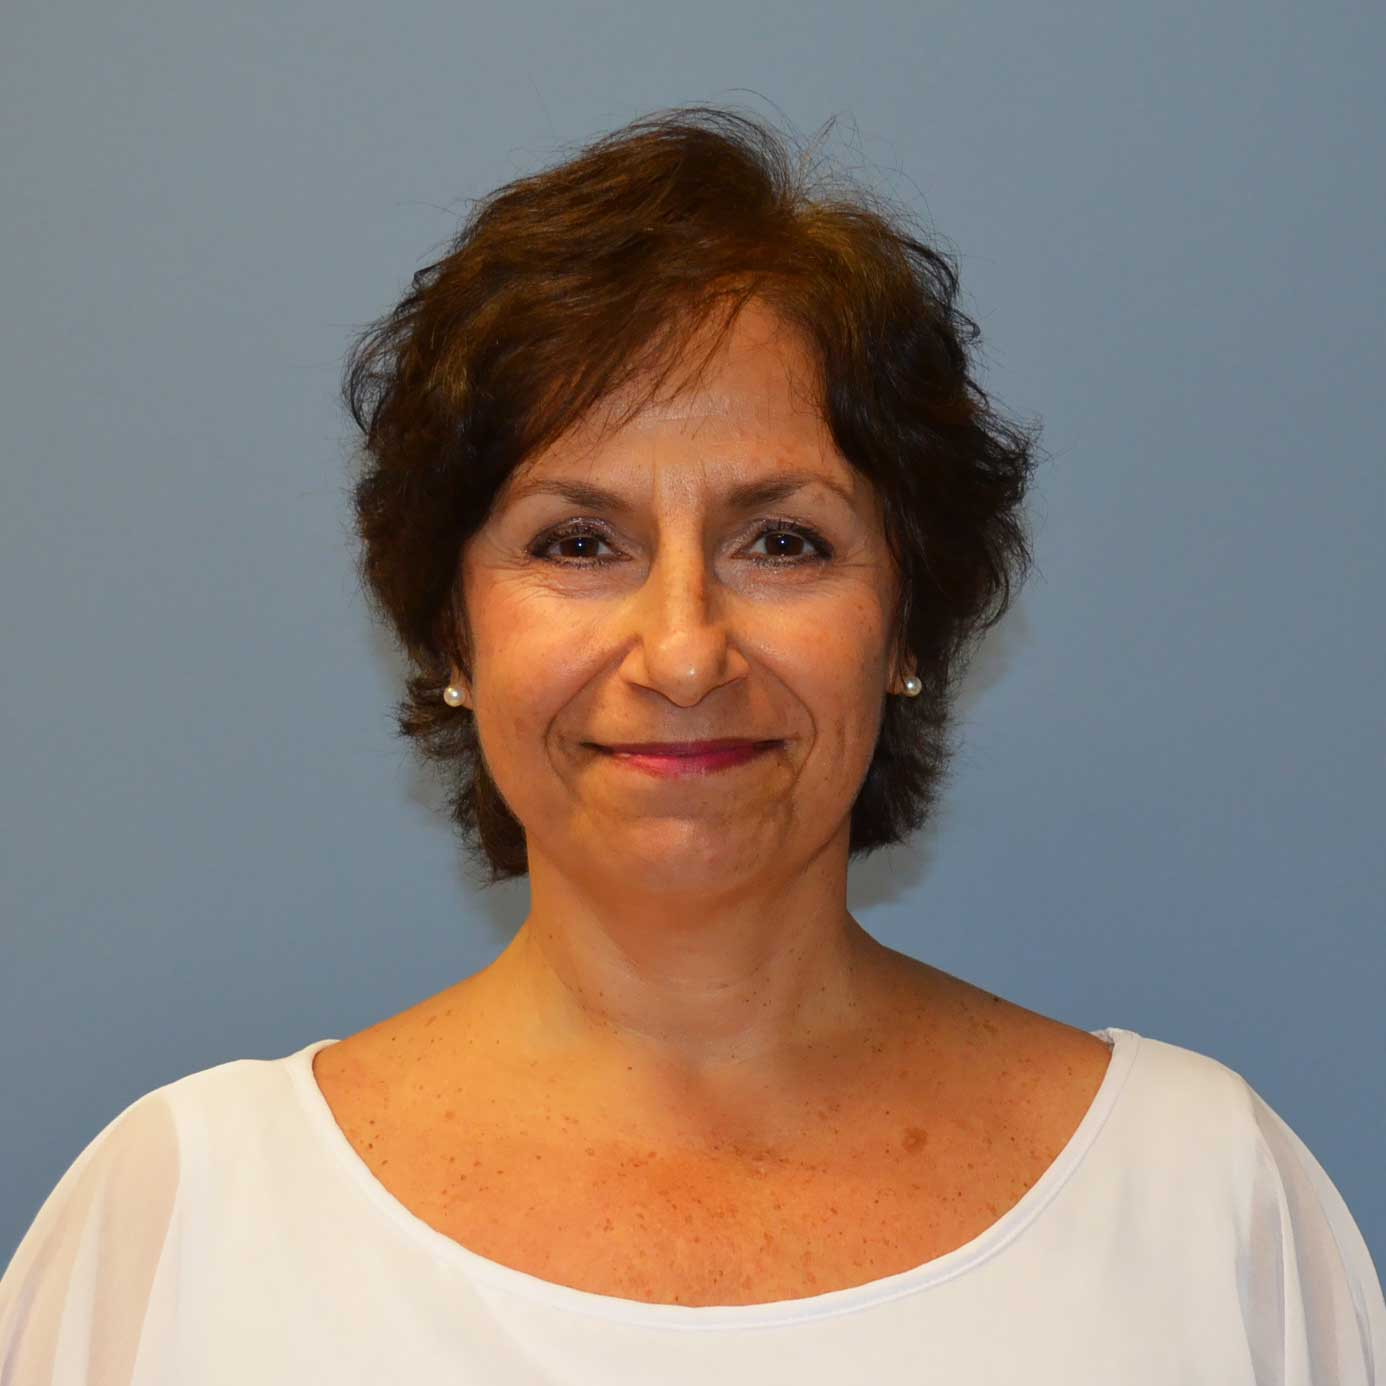 Rosemary Lagana, Accounting / Office Manager